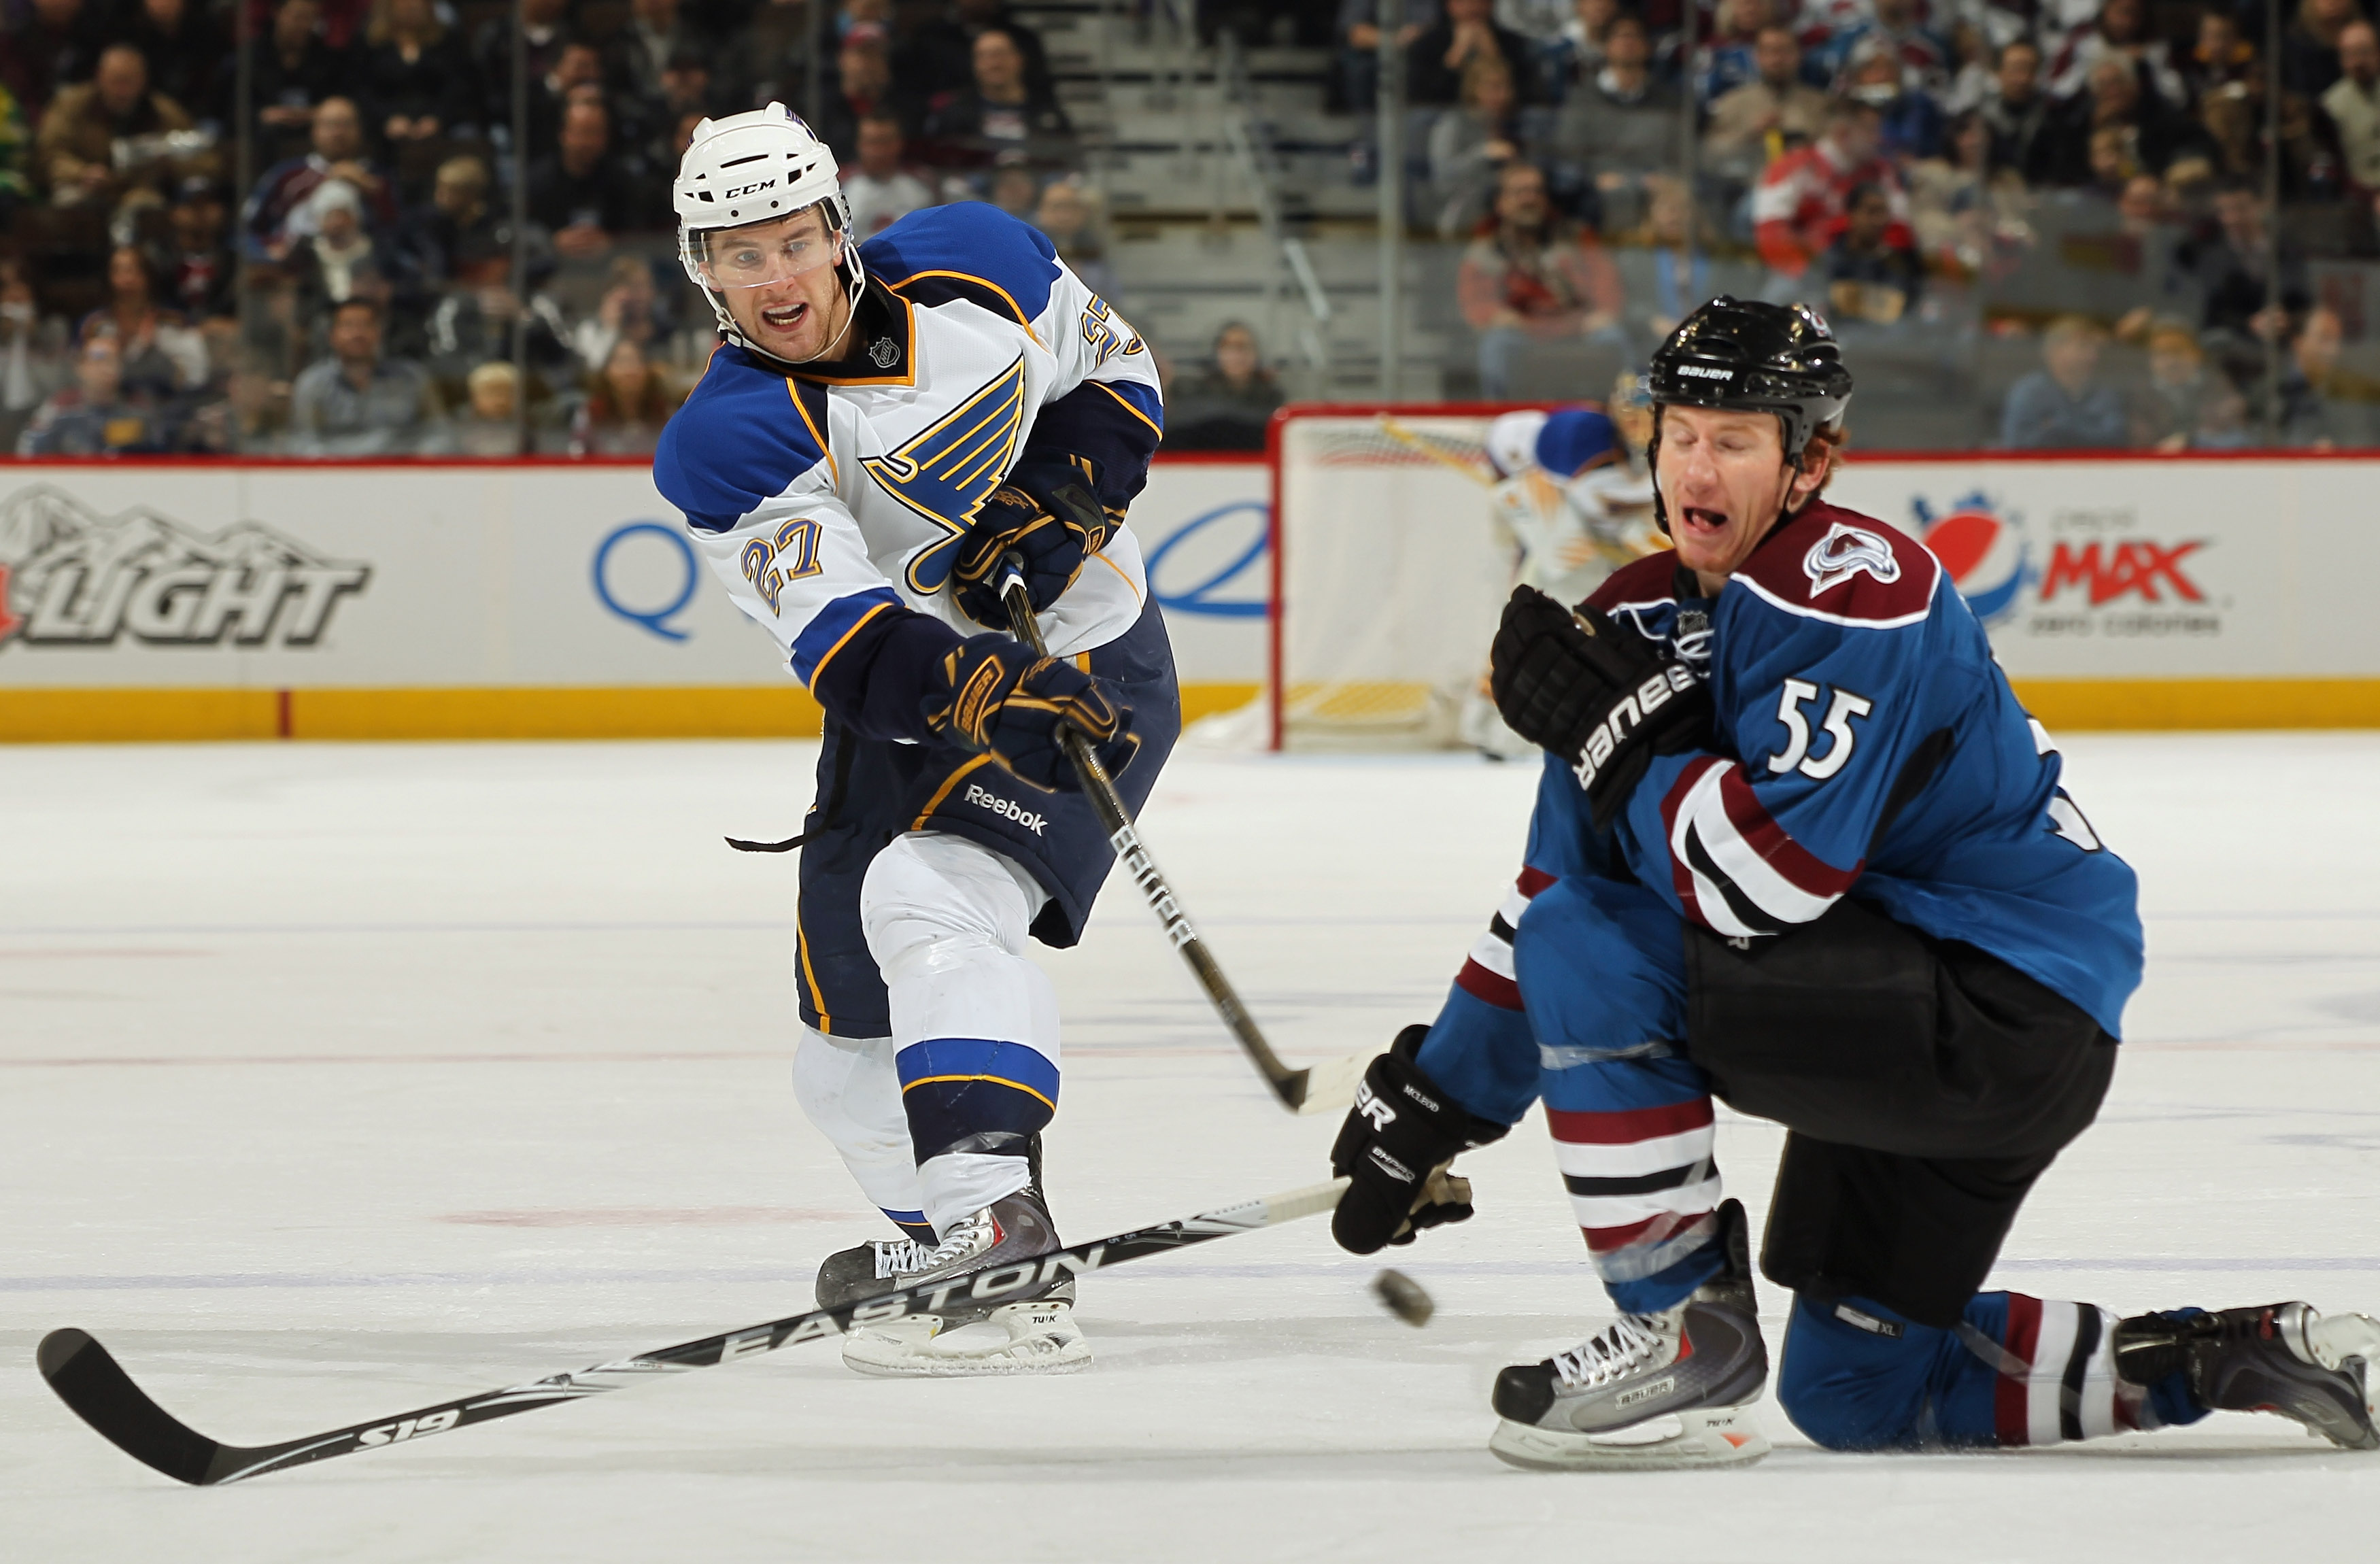 DENVER - NOVEMBER 15:  Alex Pietrangelo #27 of the St. Louis Blues takes a shot as Cody McLeod #55 of the Colorado Avalanche defends at the Pepsi Center on November 15, 2010 in Denver, Colorado. The Avalacnhe defeated the Blues 6-3.  (Photo by Doug Pensin